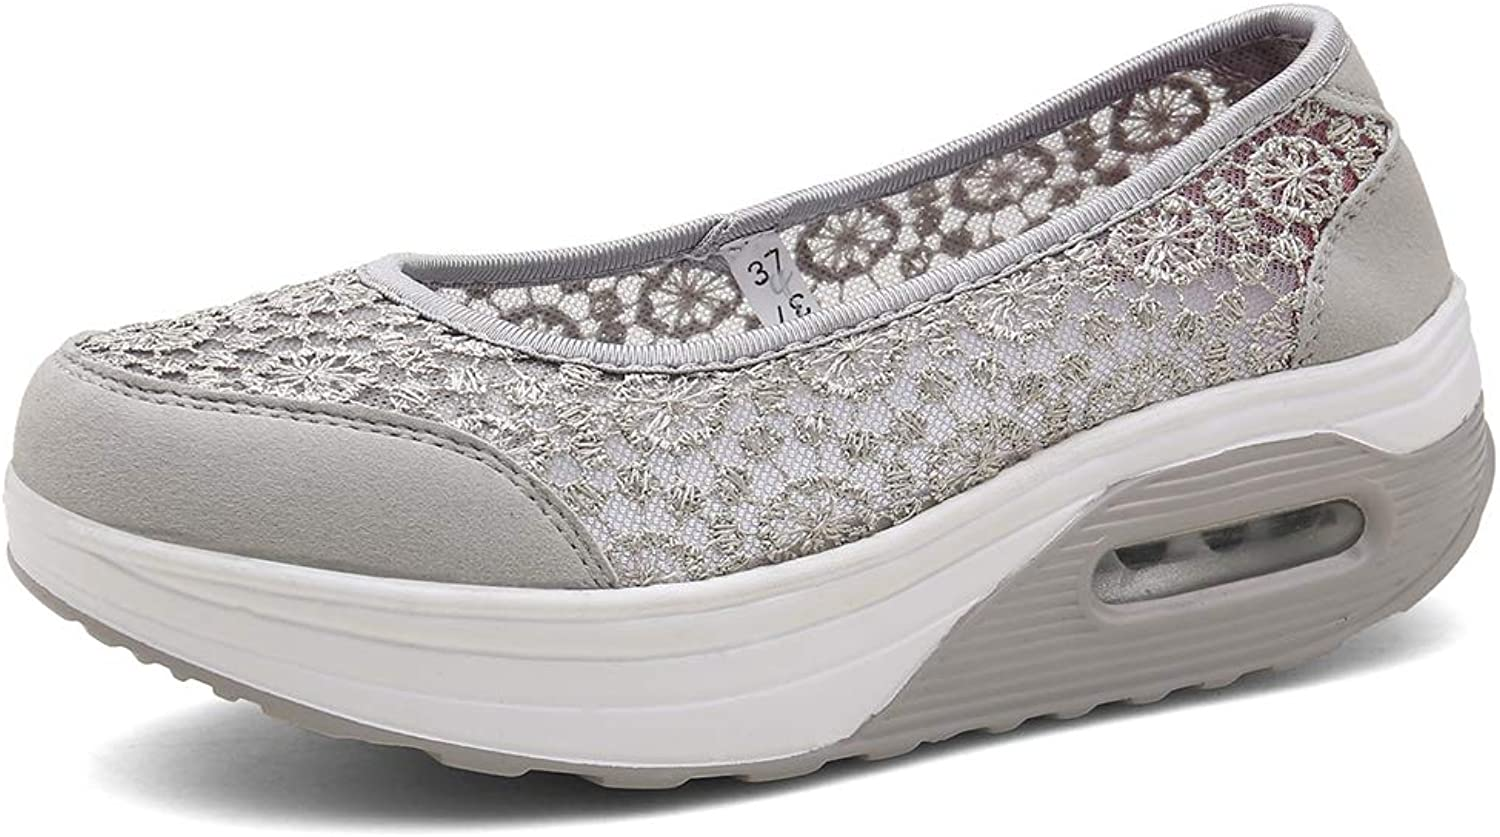 Escort Runners Women's Slip-On Mesh Walking shoes Nurse shoes Casual Moccasin Loafers Driving shoes